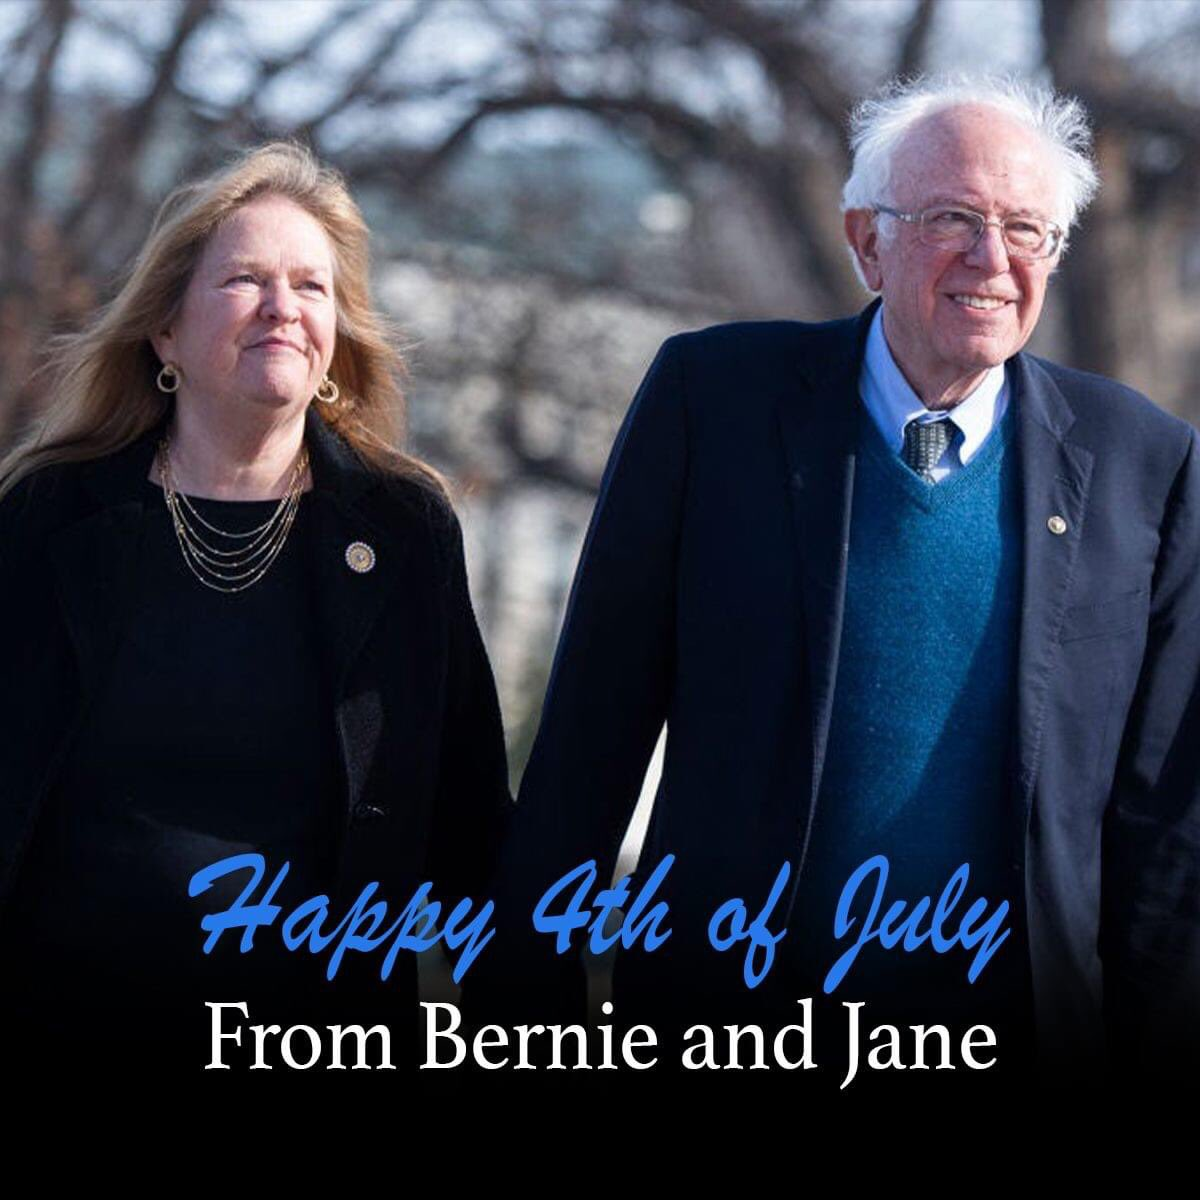 Jane and I wish you and your loved ones a very happy Independence Day.  Together, we can and will create the kind of nation based on love and justice that we know we can become. https://t.co/WZFthTCCwq